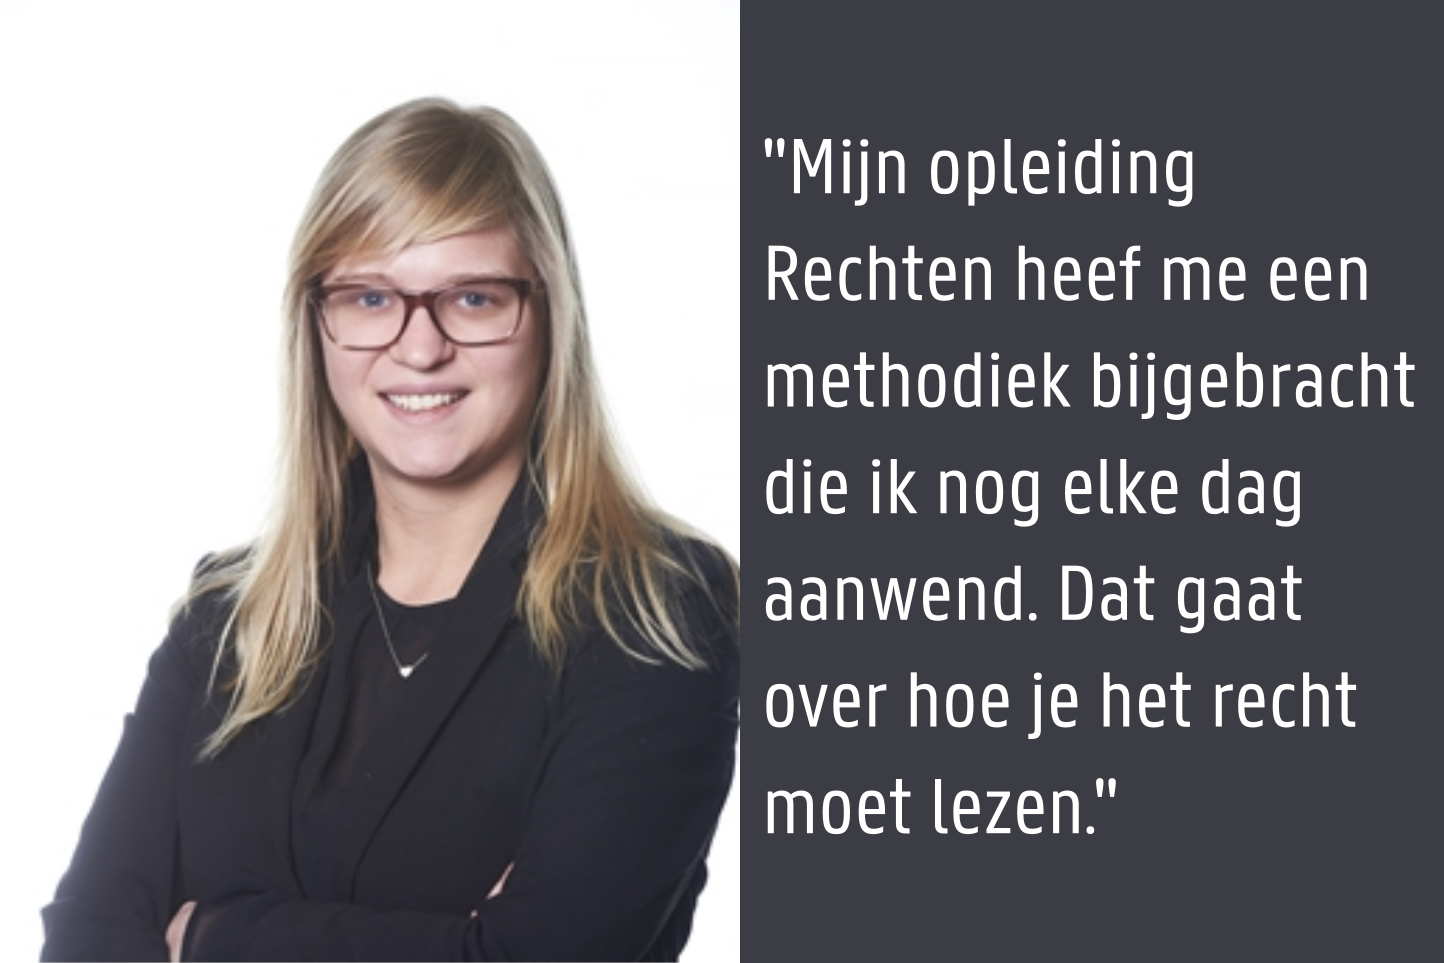 Annelies De Boever - Junior Consultant voor Global Trade Advisory bij Deloitte